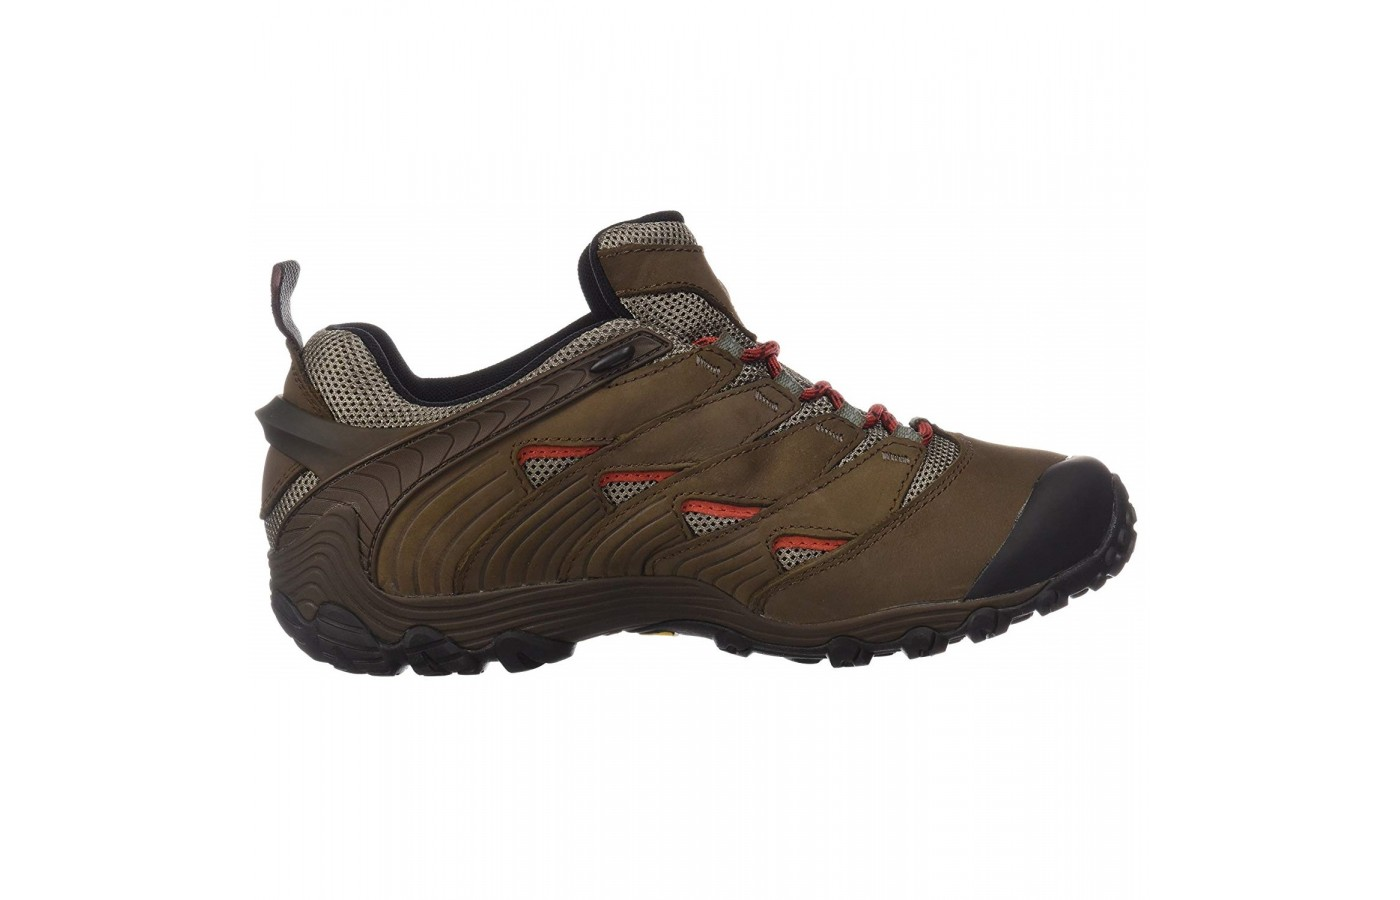 The Merrell Chameleon is lightweight in nature in order to avoid foot and leg fatigue.